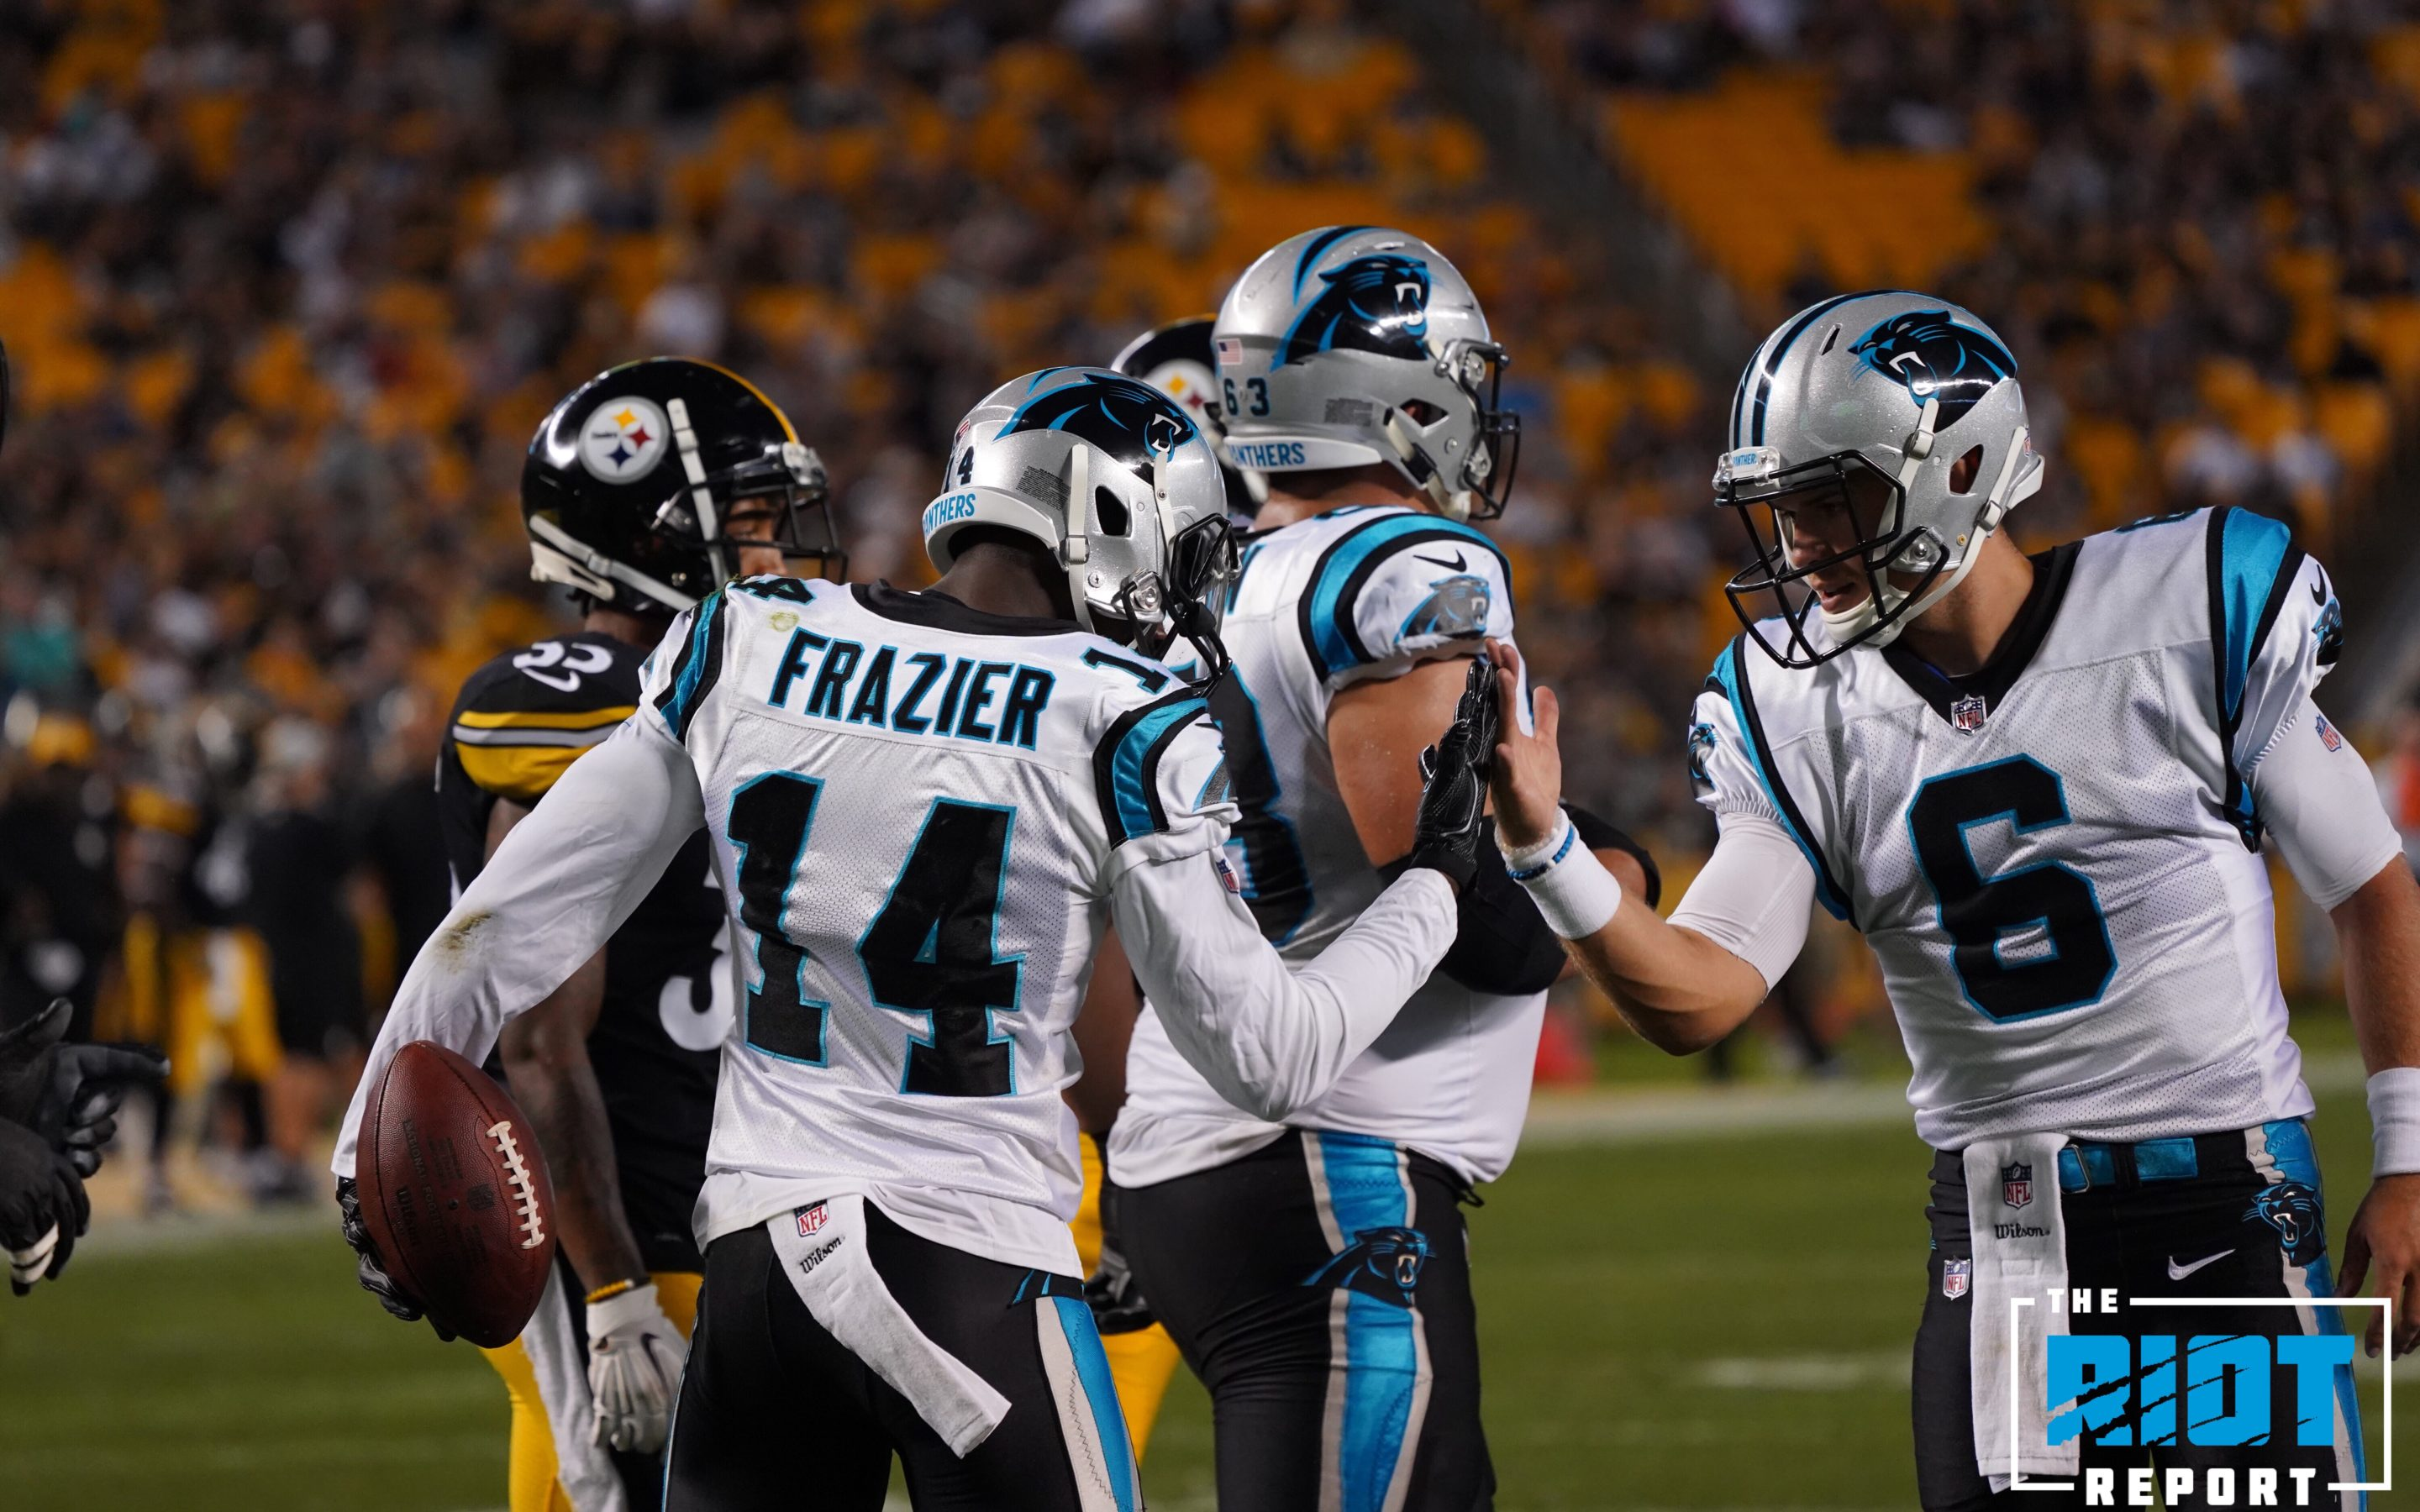 fa9b8c62b Carolina Panthers vs. Pittsburgh Steelers Report